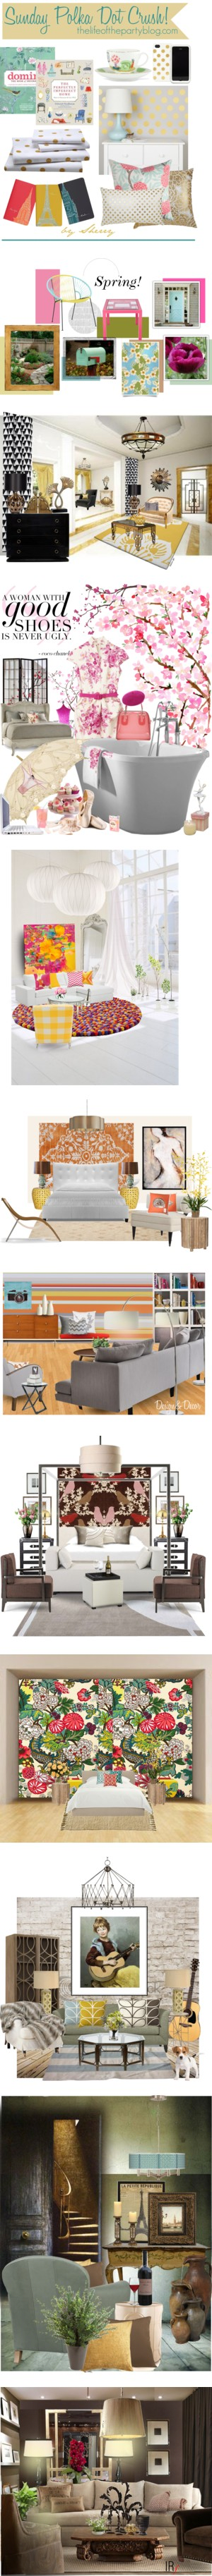 """Top Interior Design Sets for Mar 24th, 2013"" by polyvore ❤ liked on Polyvore"